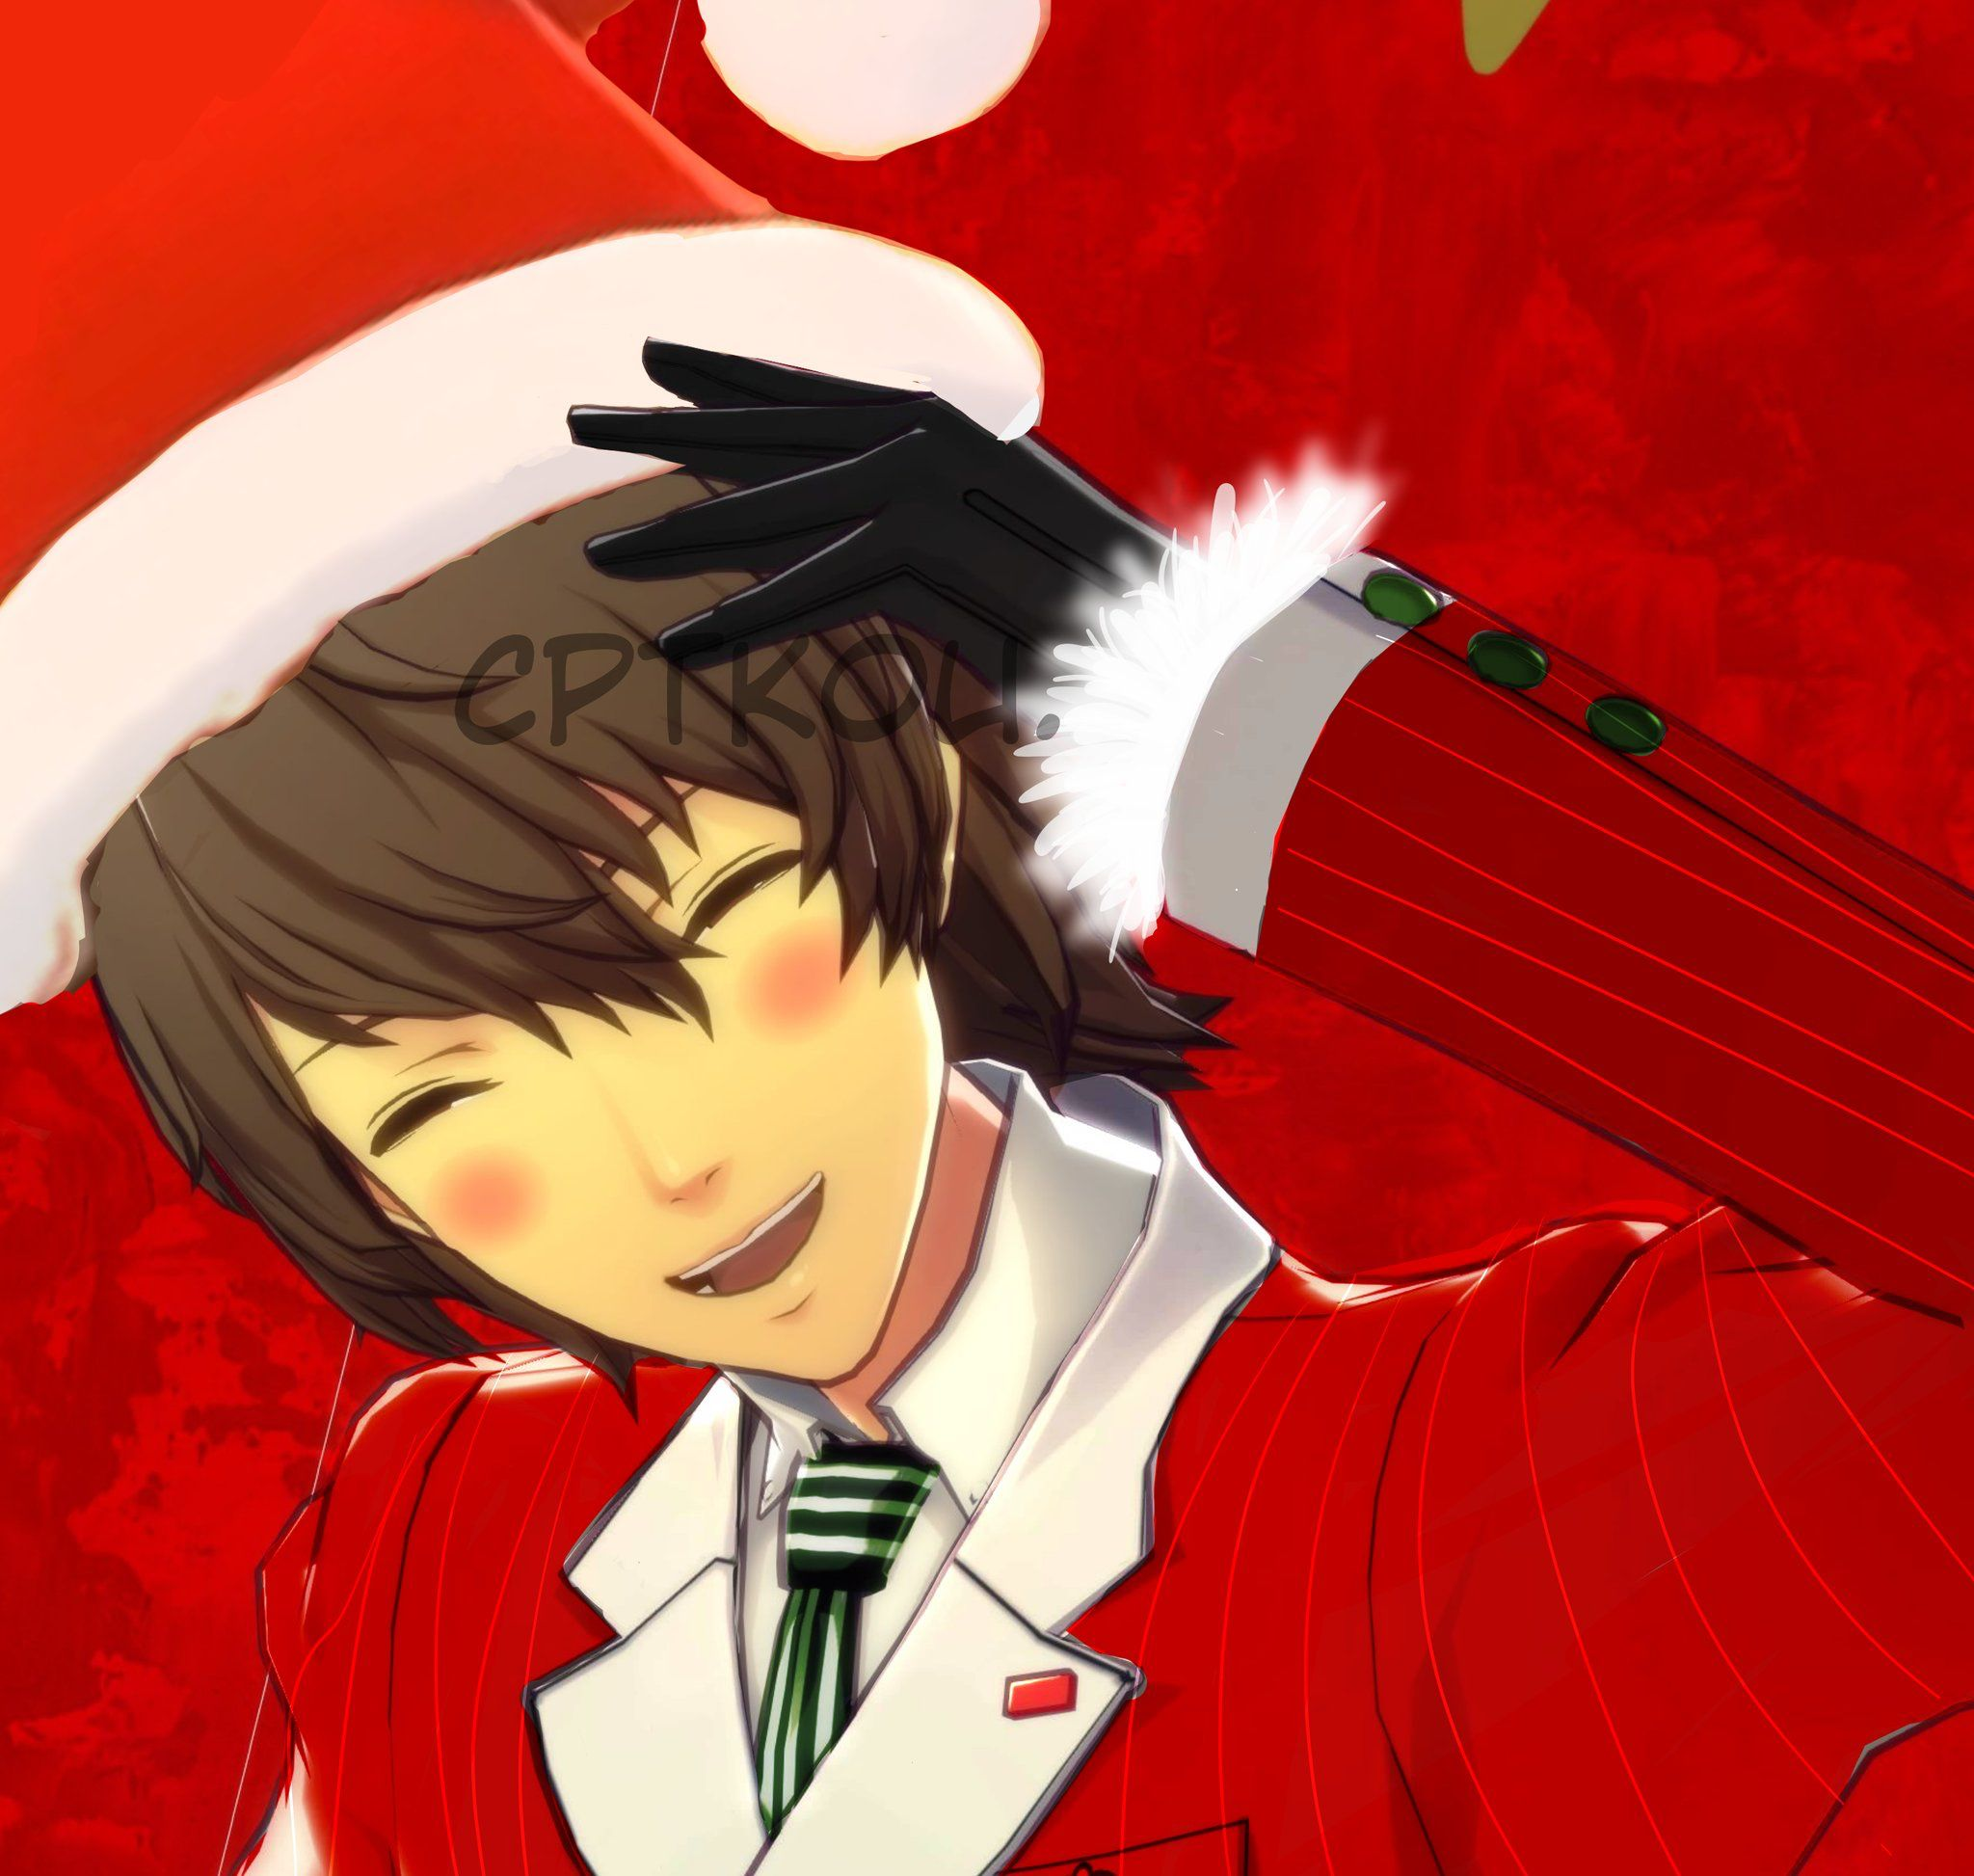 Pin by G(oro Akechi) on Goro Akechi, the light of my life